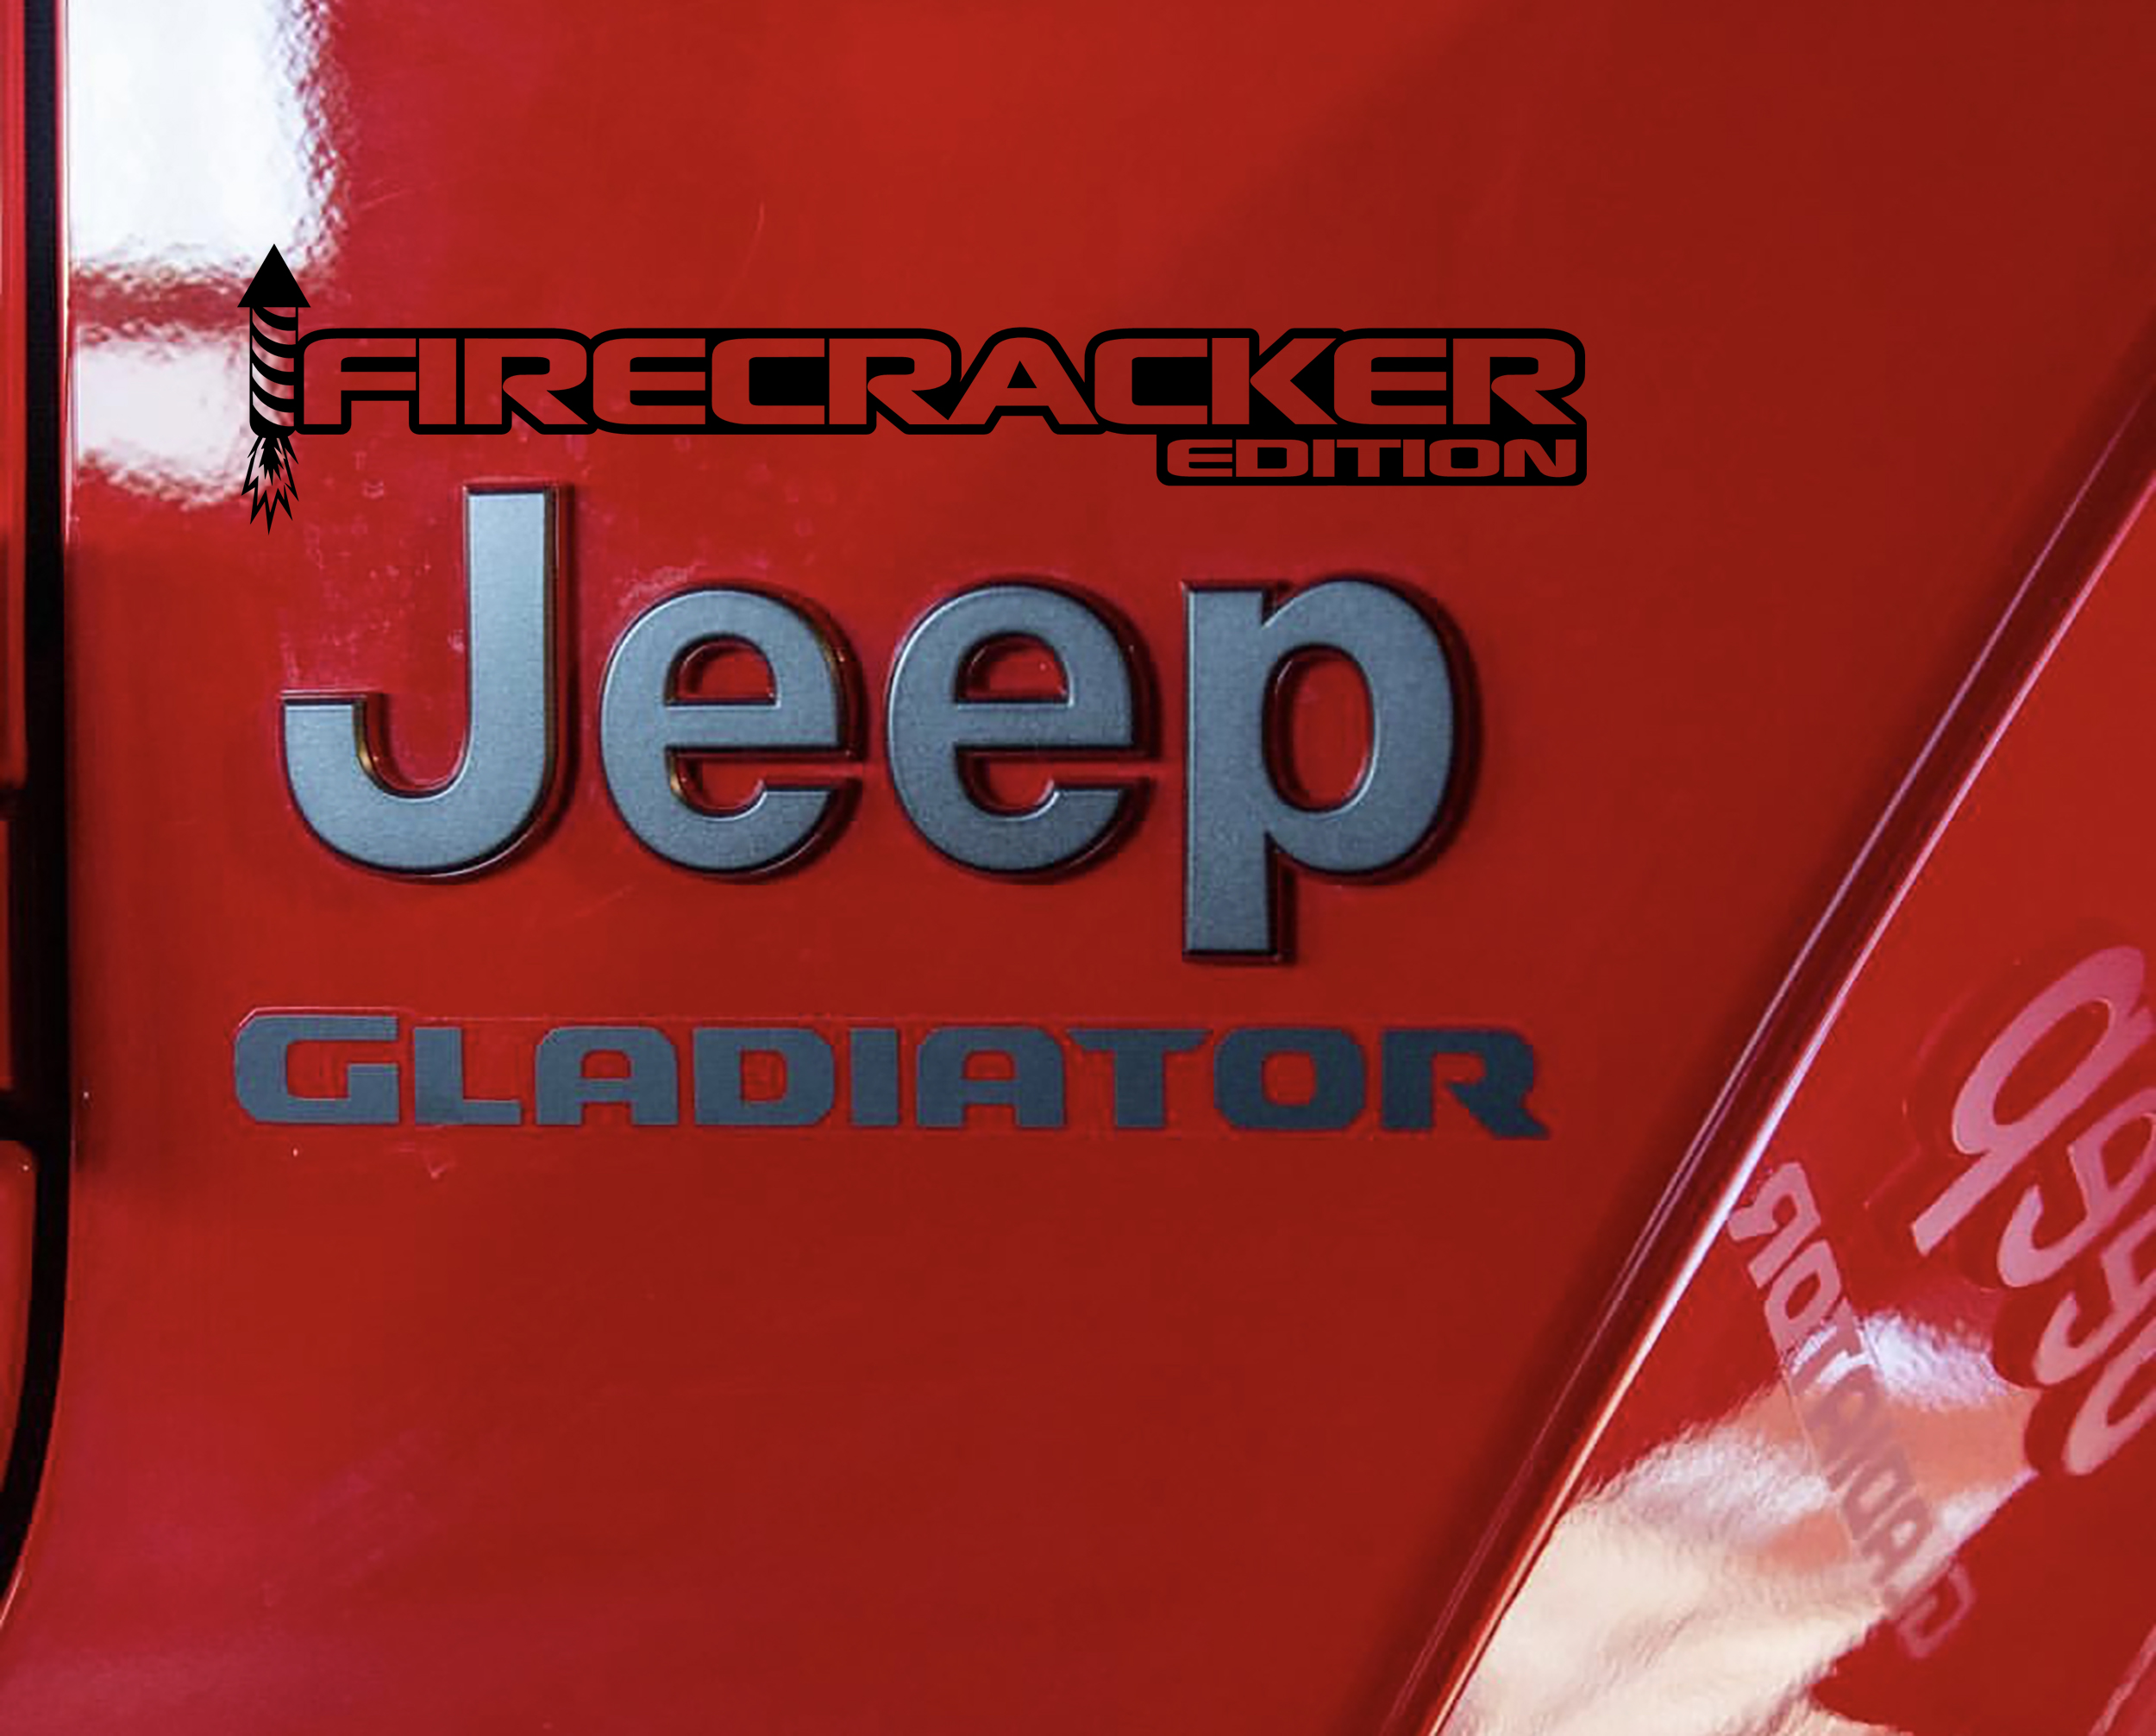 Fender Decals For Wrangler/Gladiator - JL/JT Firecracker Red Edition Decal (Pair)